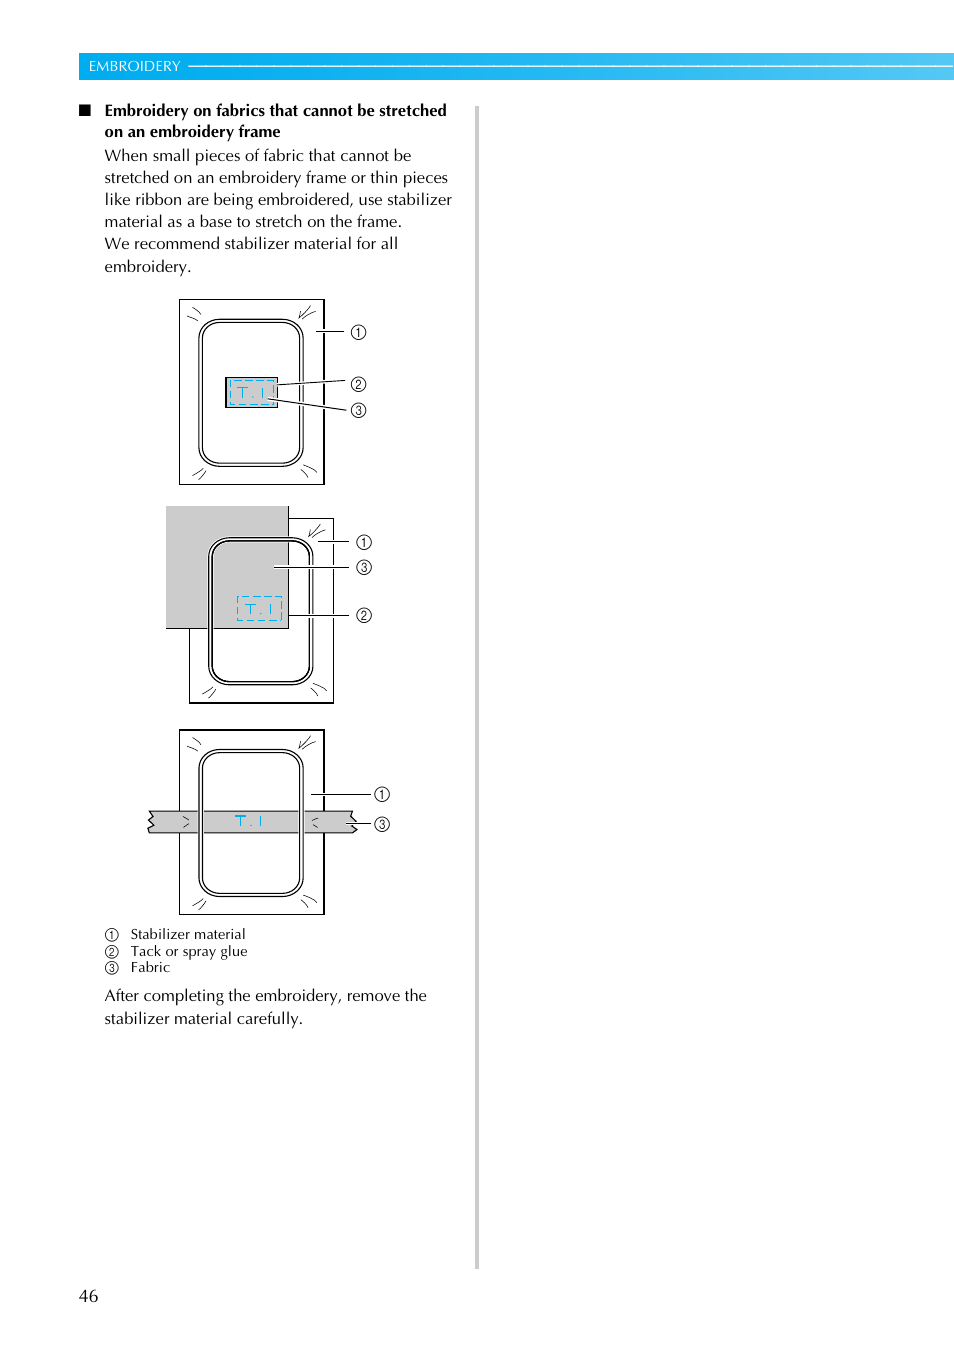 brother pe 770 user manual page 48 88 original mode also for rh manualsdir com brother pe770 embroidery machine user manual Brother PE770 Embroidery Machine Accessories